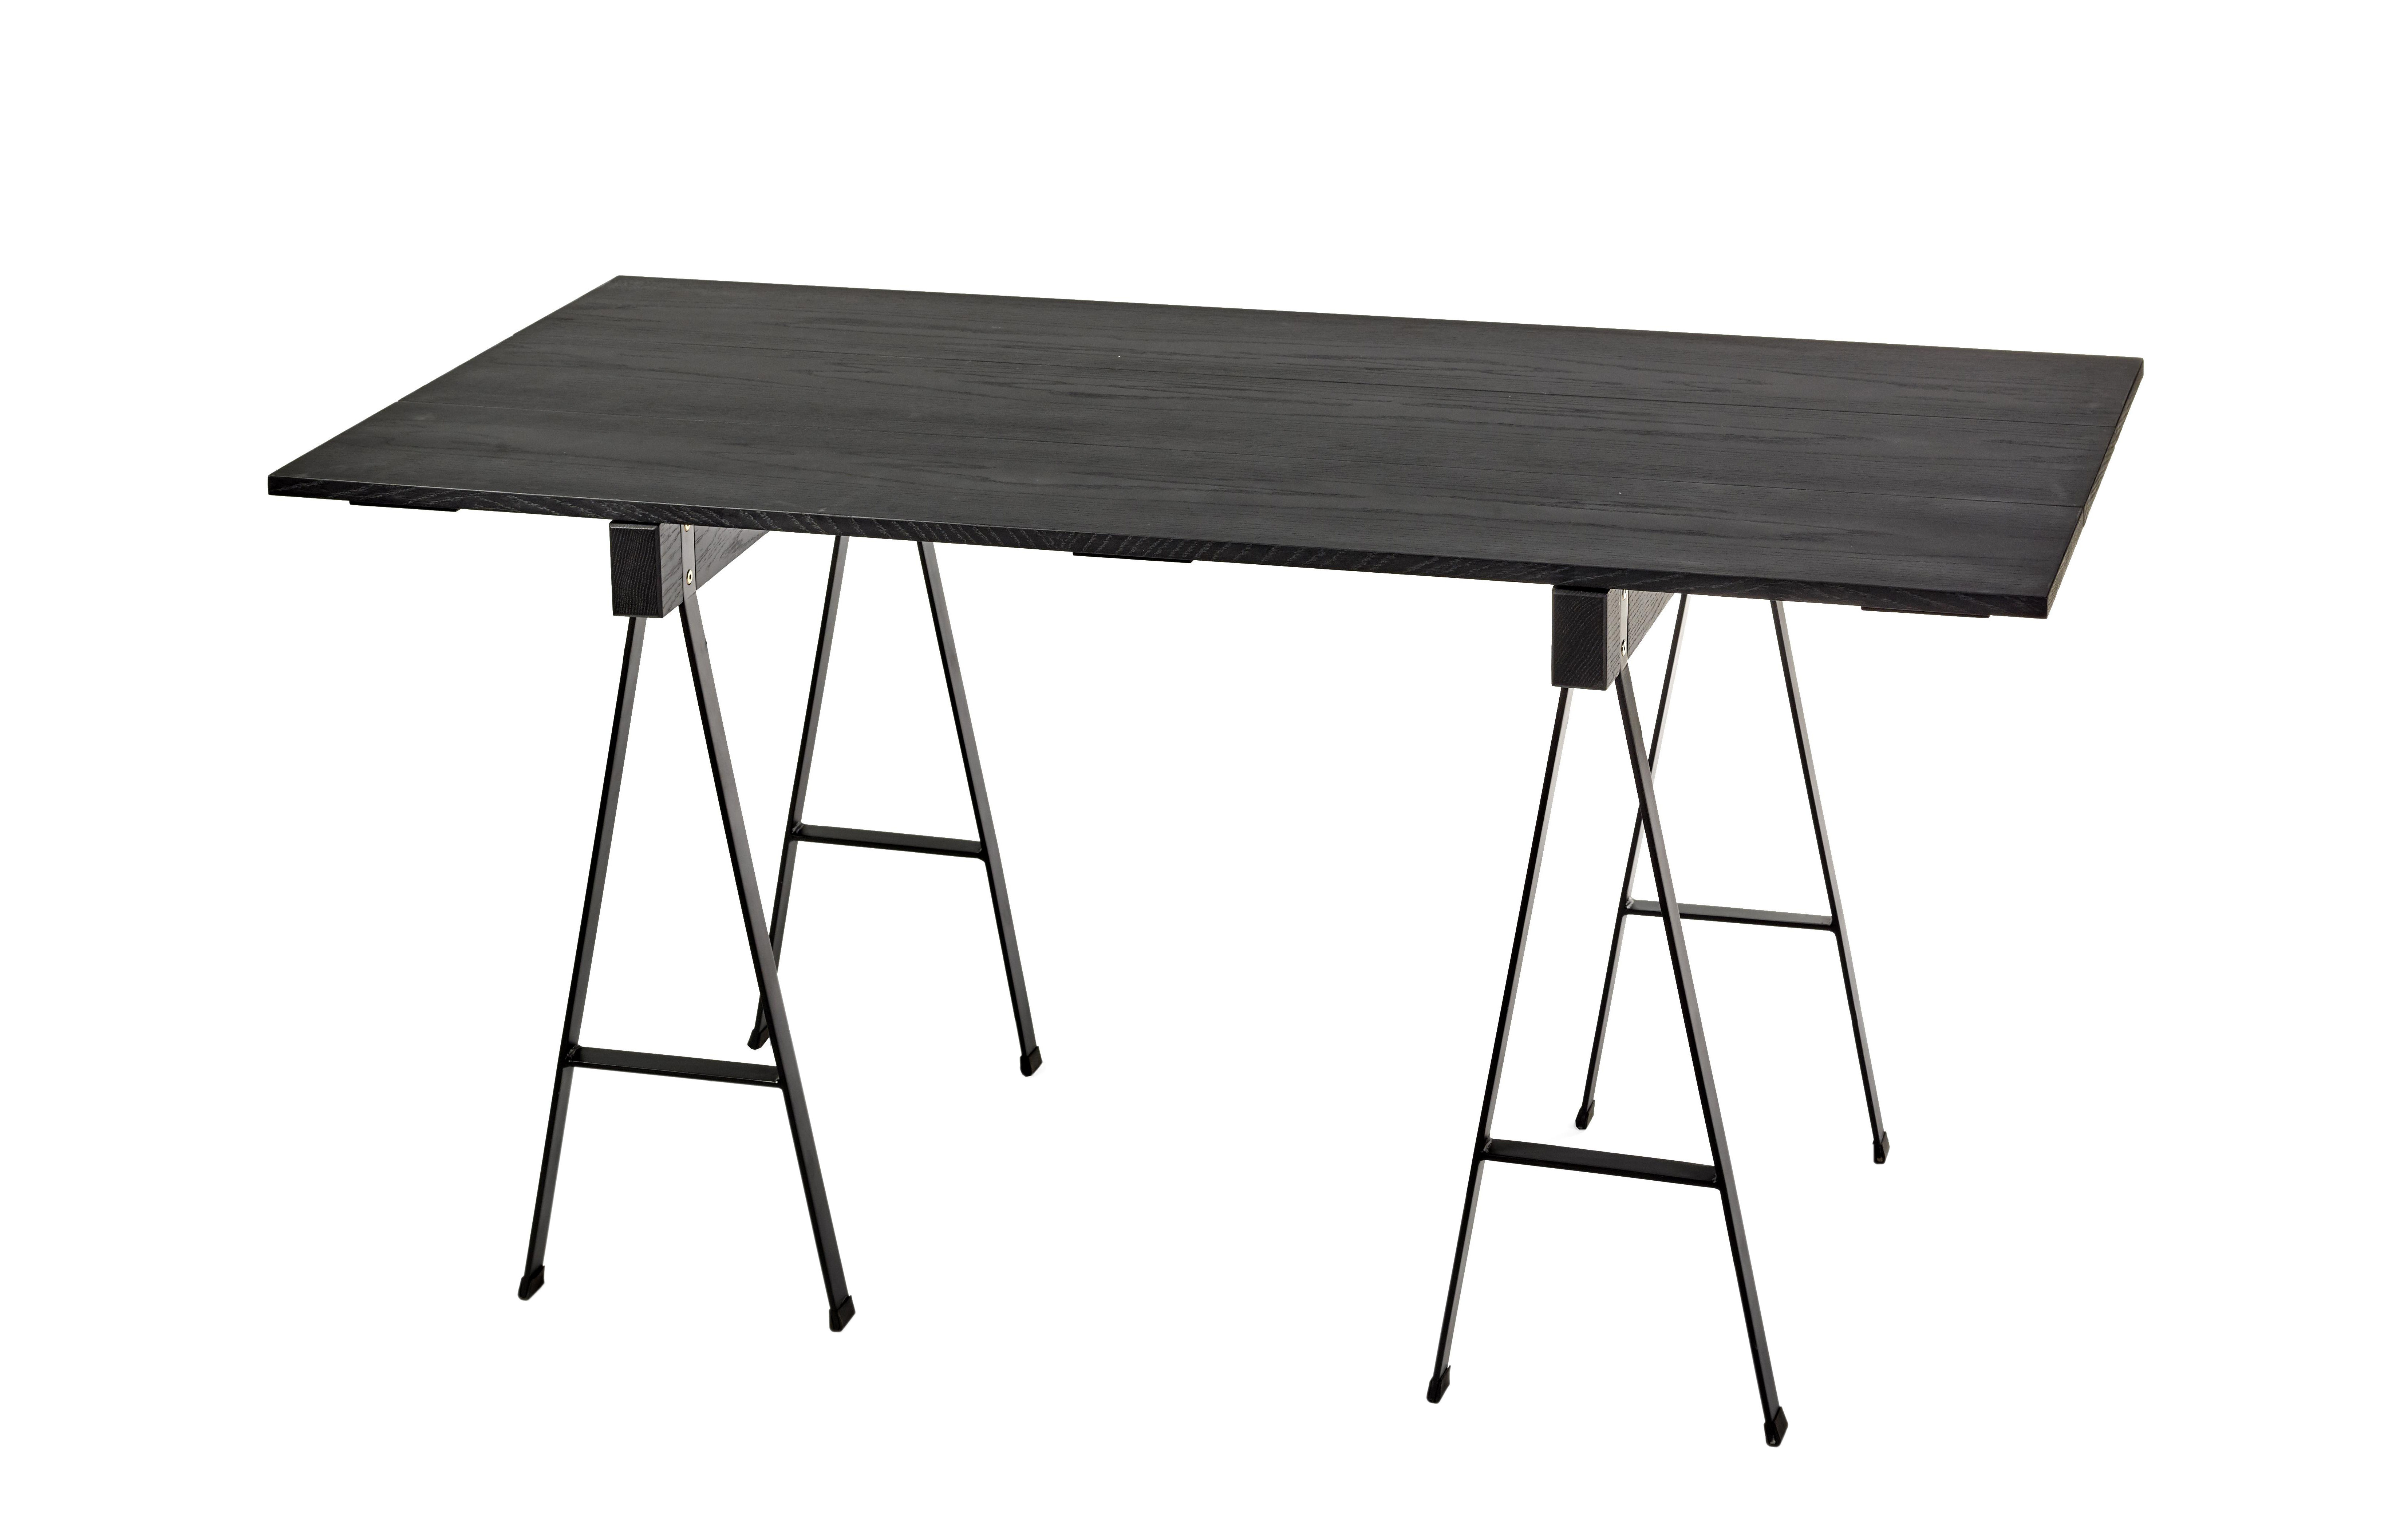 Furniture - Dining Tables - Studio Simple Rectangular table - / with trestles - 150 x 75 cm by Serax - Black - Metal, Oak